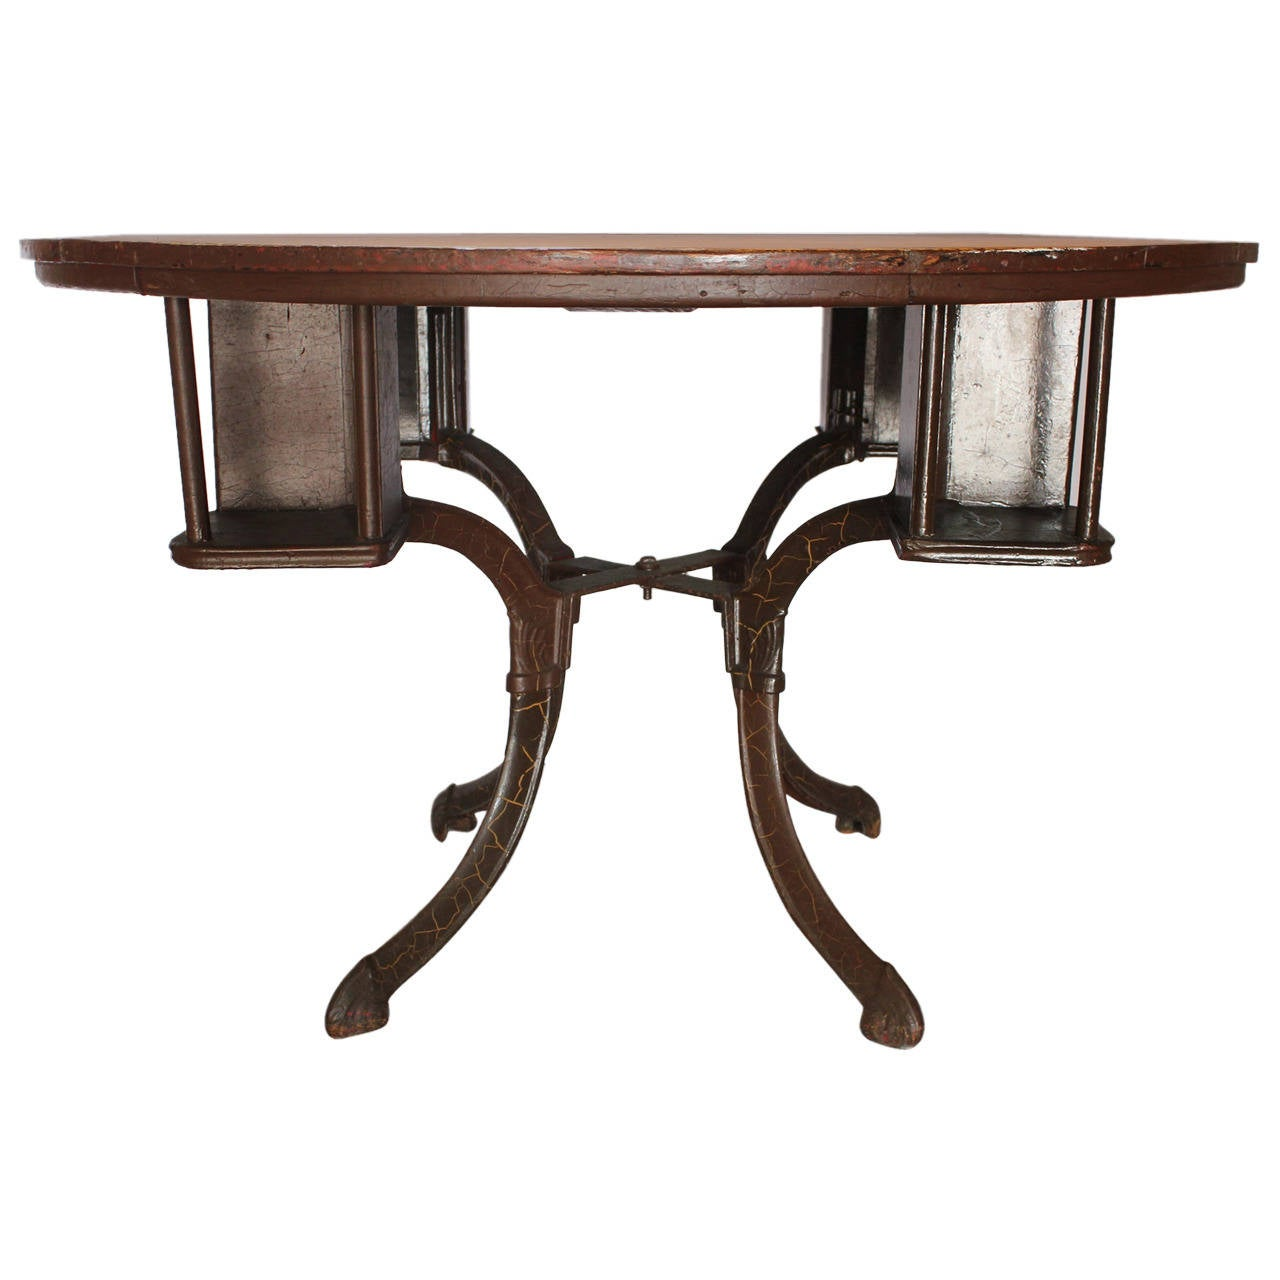 Antique american game table at 1stdibs for 11 in 1 game table